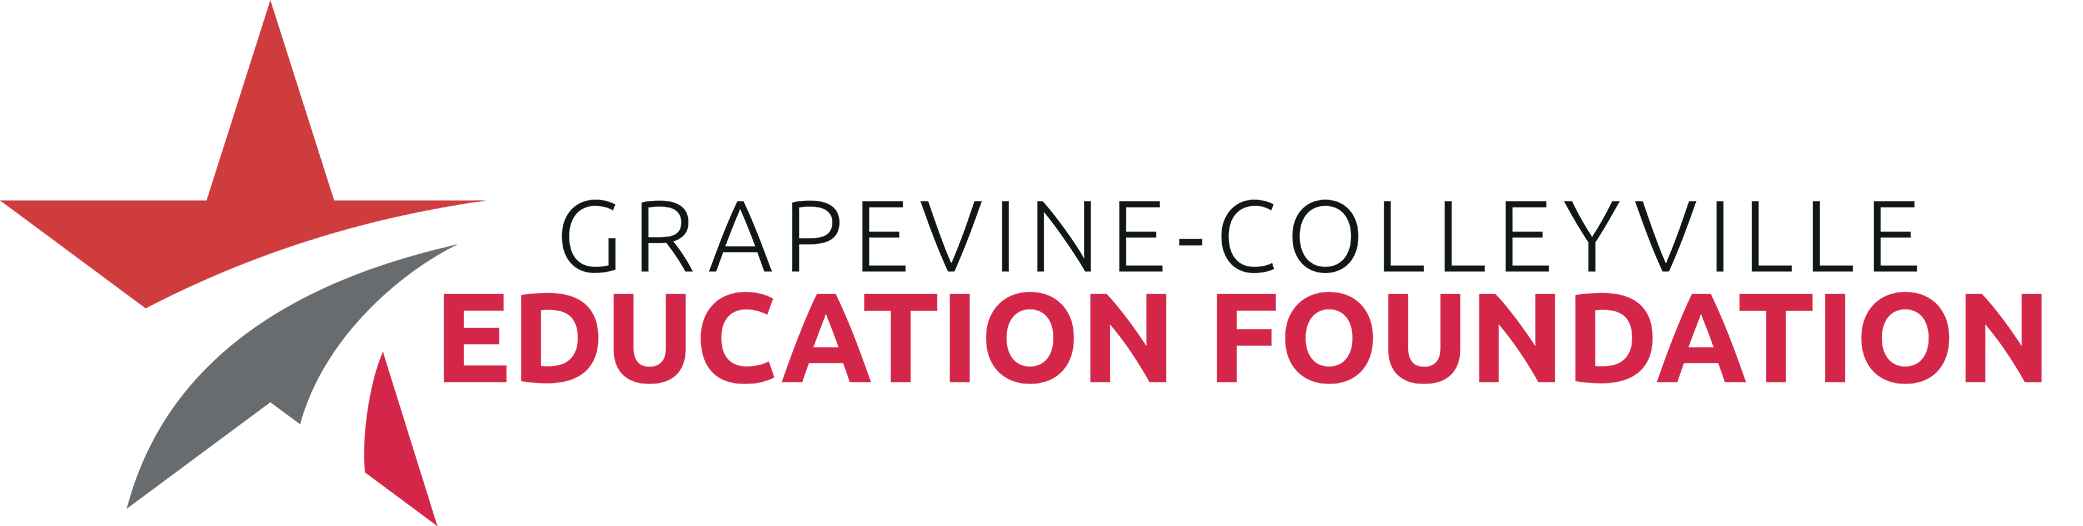 Grapevine-Colleyville Education Foundation GCEF